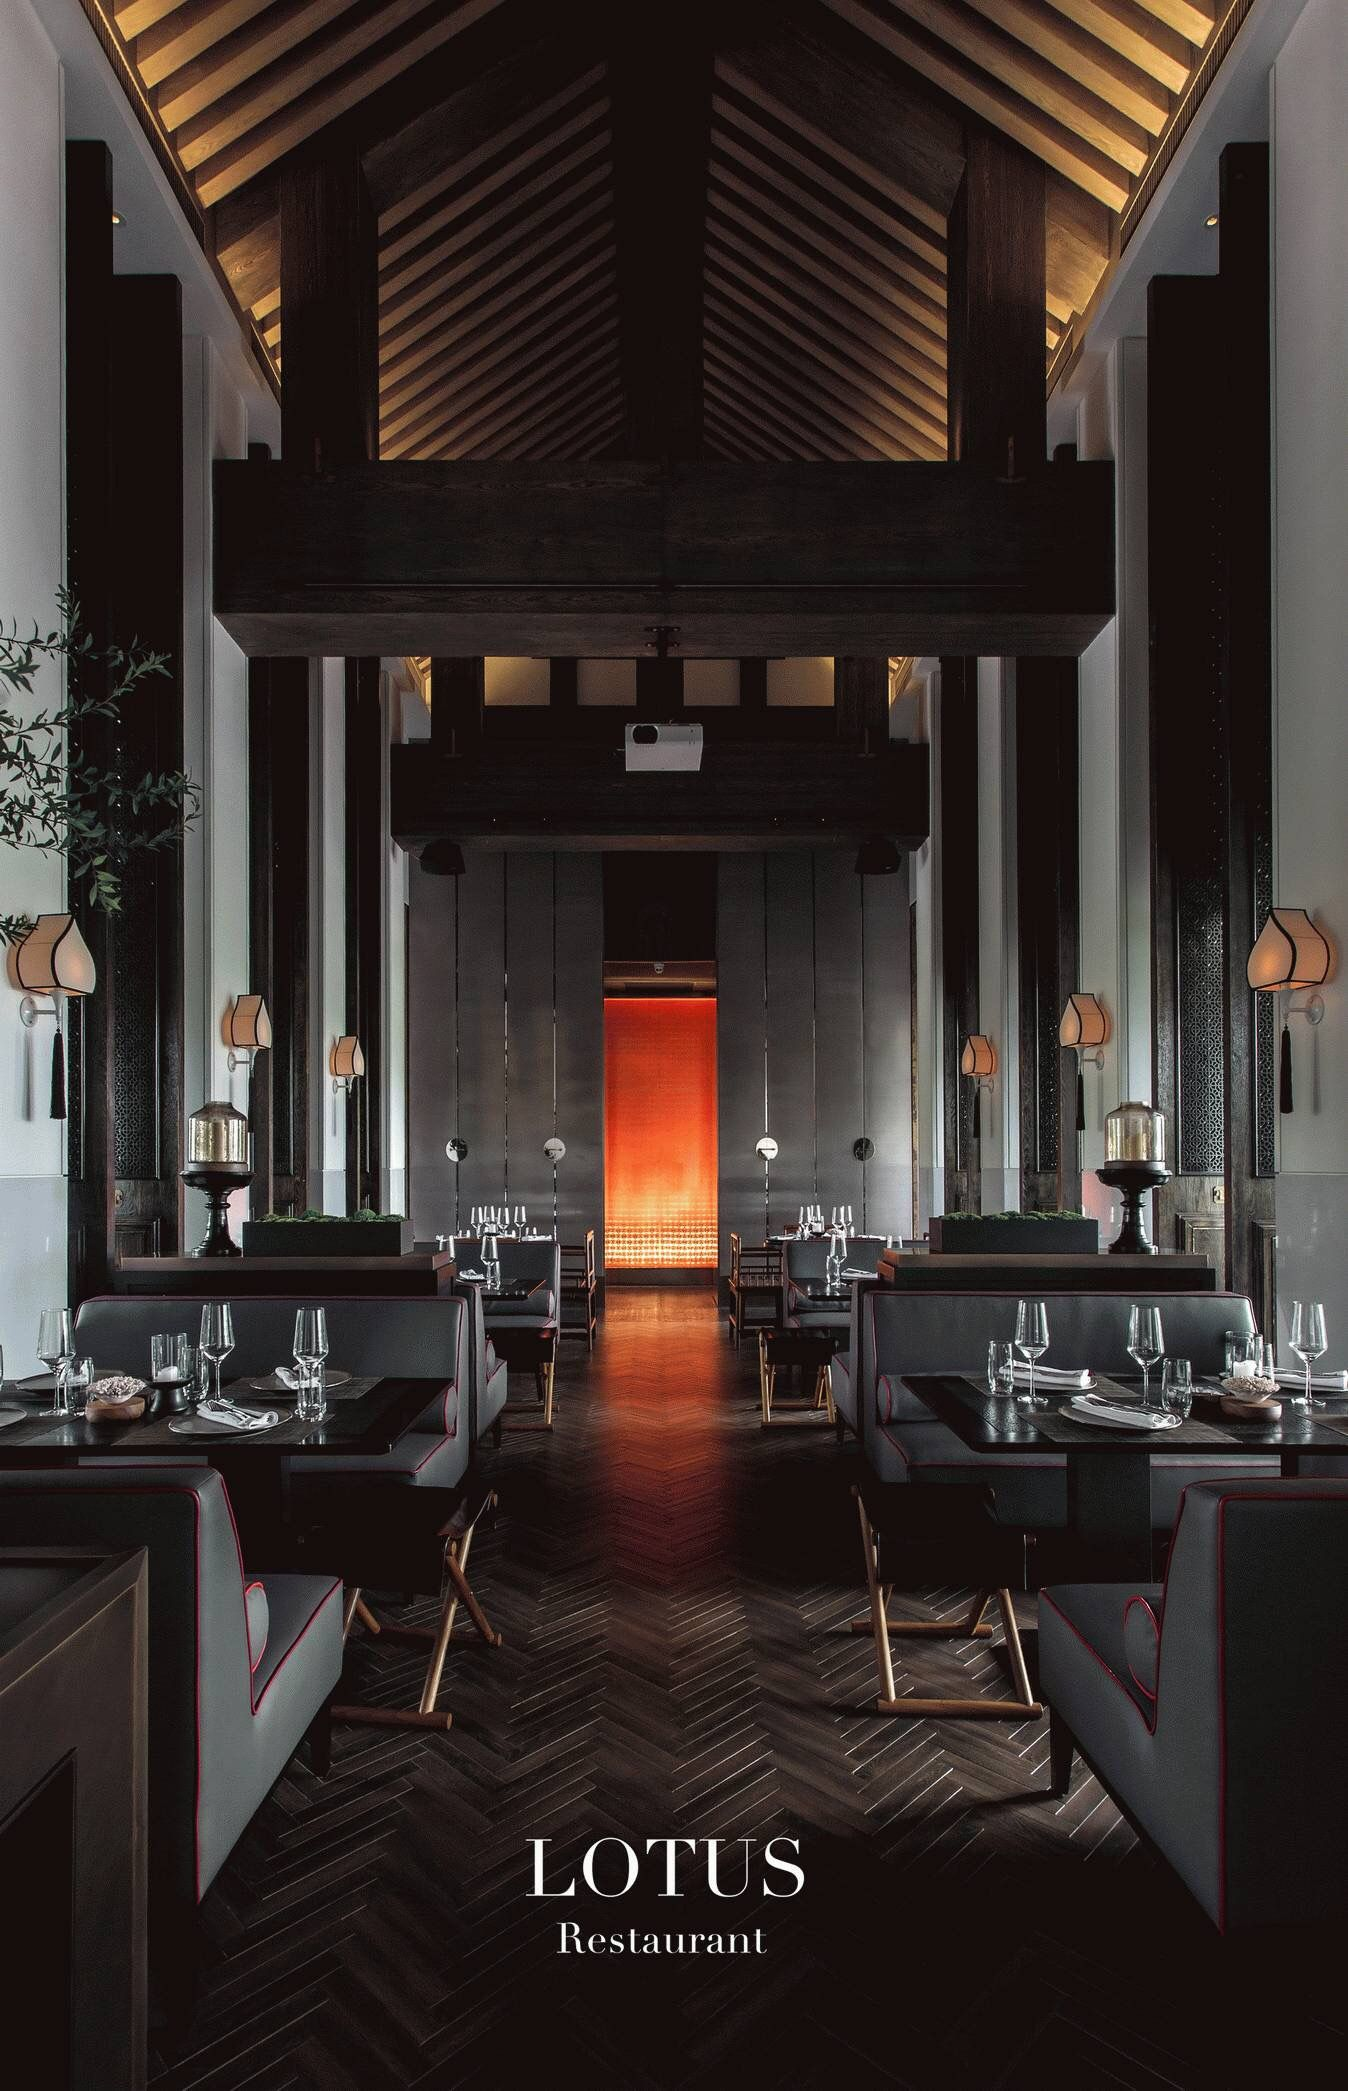 Classic Asian Restaurant Interior Design With Traditional